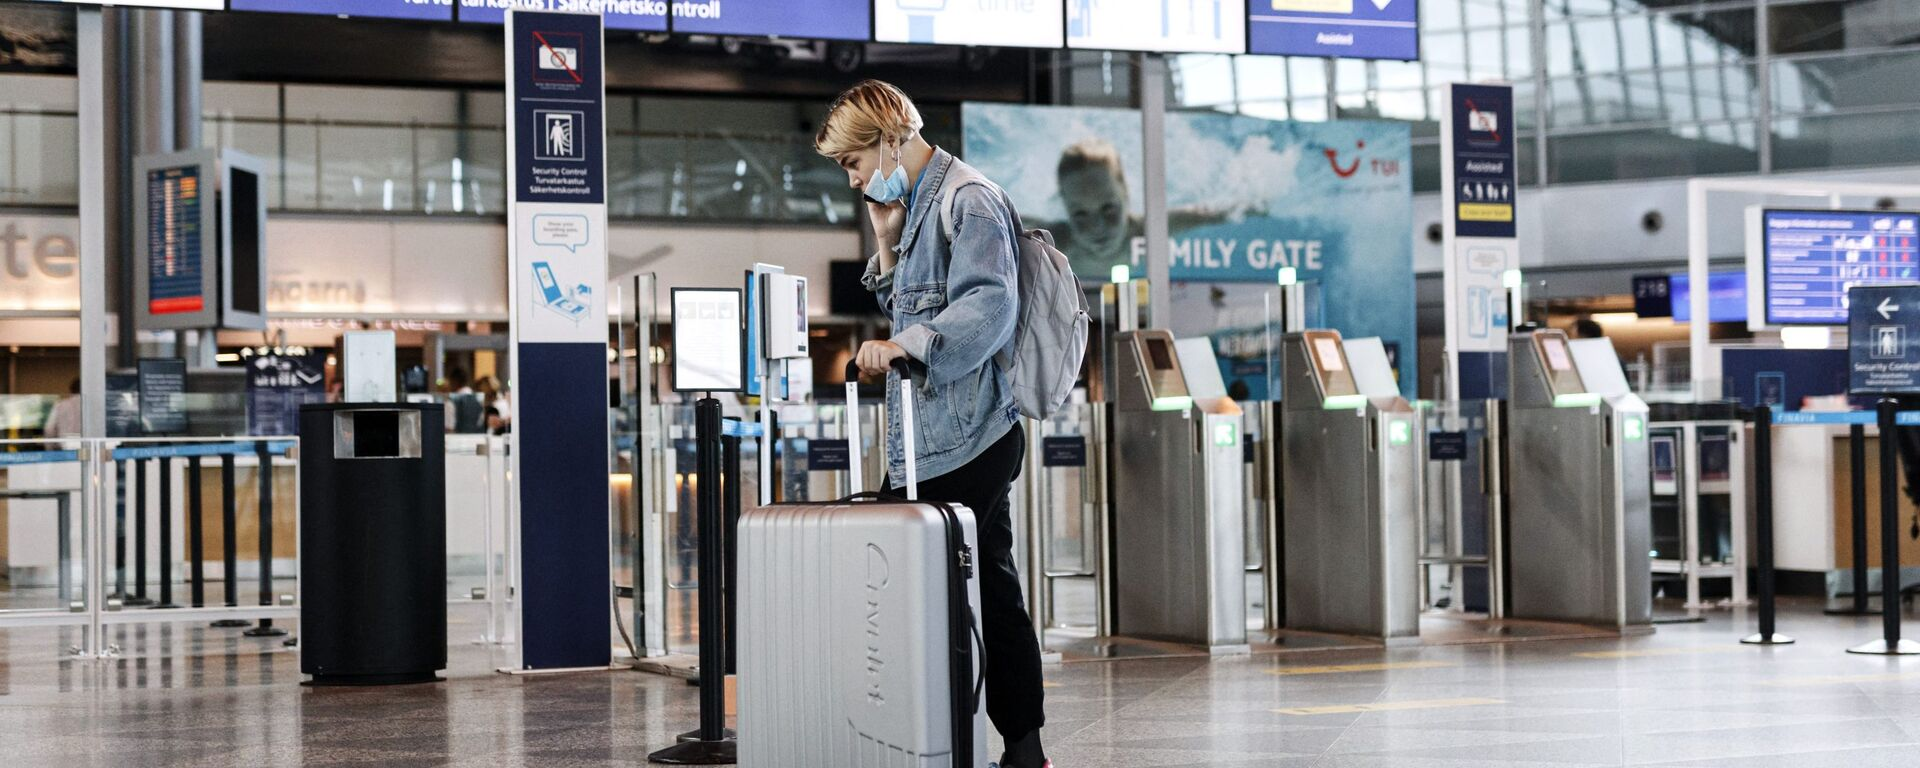 A passenger wears a face mask at the Helsinki-Vantaa airport in Vantaa, Finland on July 13, 2020 as Finnish Government eased COVID-19 pandemic in and out travel restrictions with several EU countries. - Sputnik International, 1920, 17.09.2021